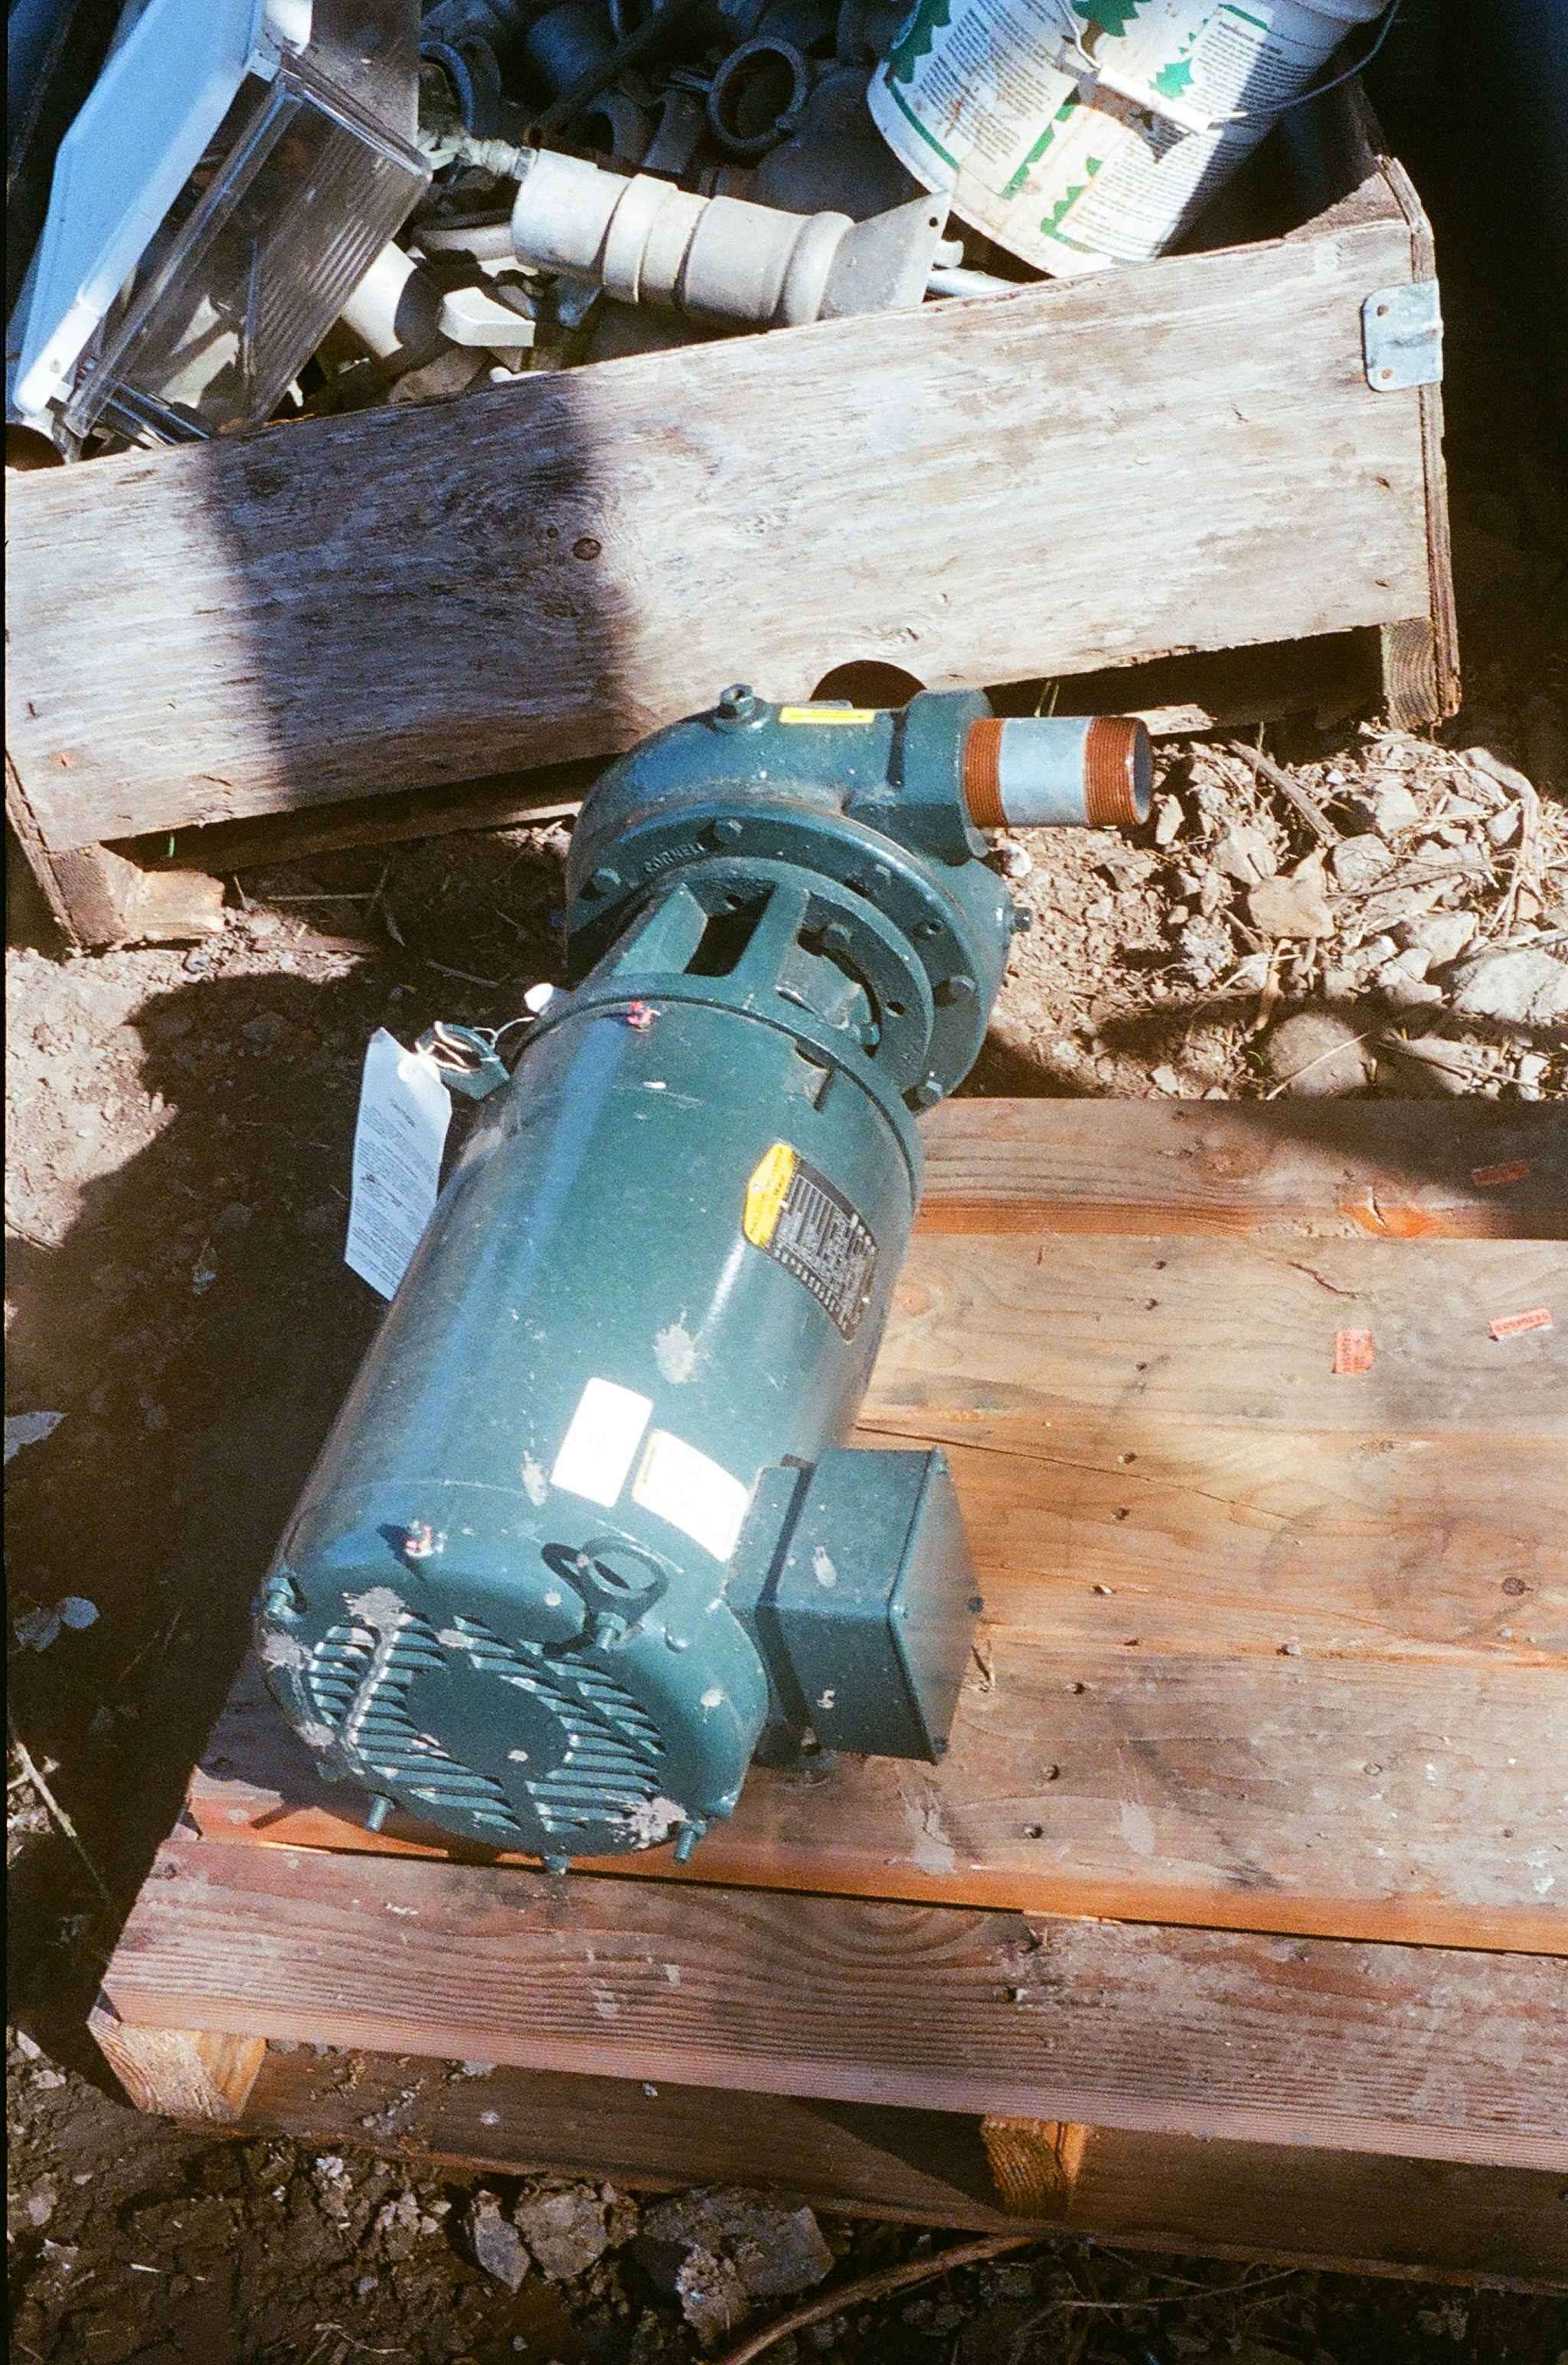 A high efficiency motor powers this irrigation pump.